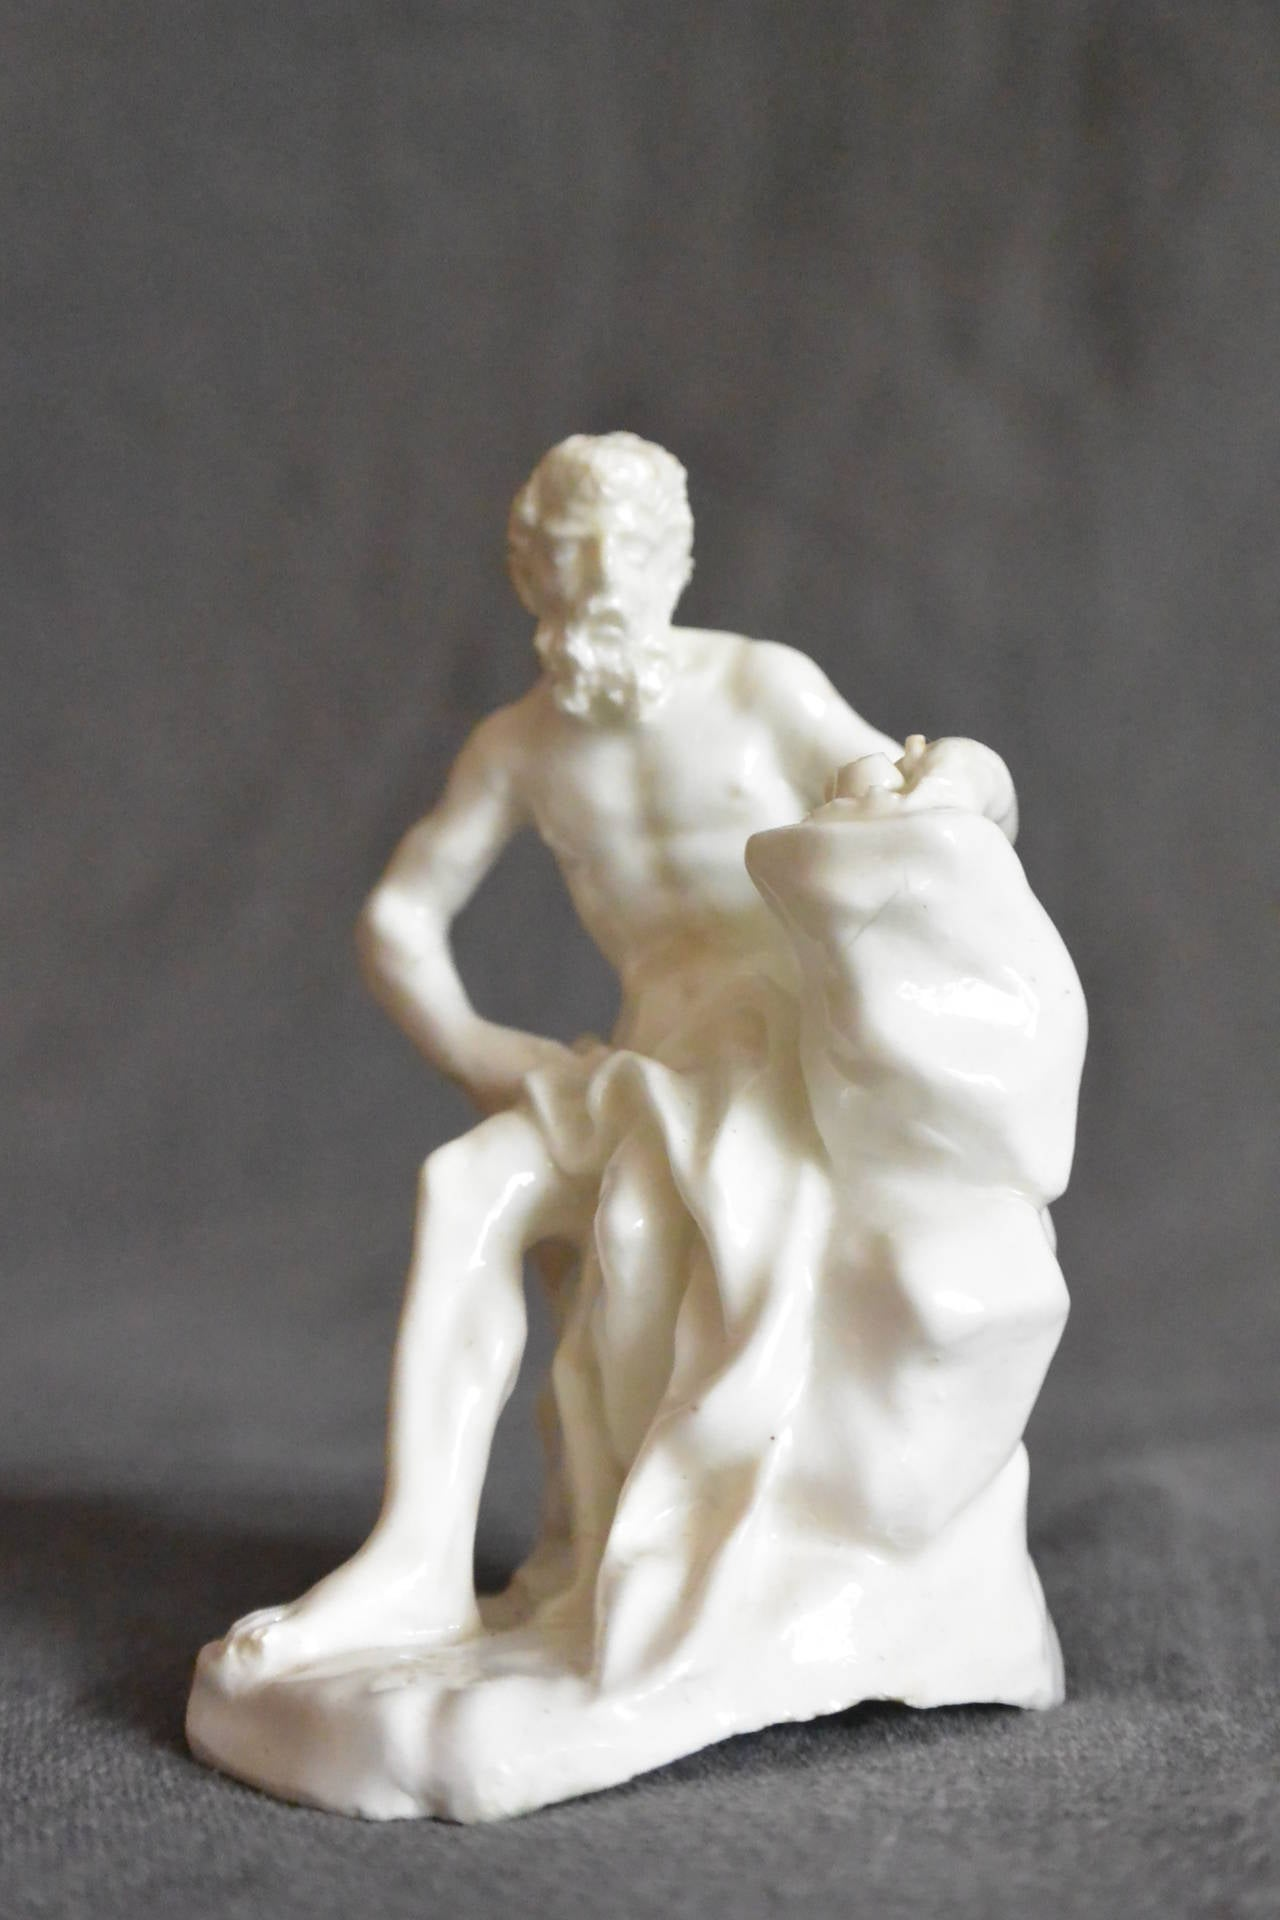 Small white soft-paste model of a river god, possibly Inachus. Naples Real Fabbrica. Italy, c.1785.  Dimension: 2